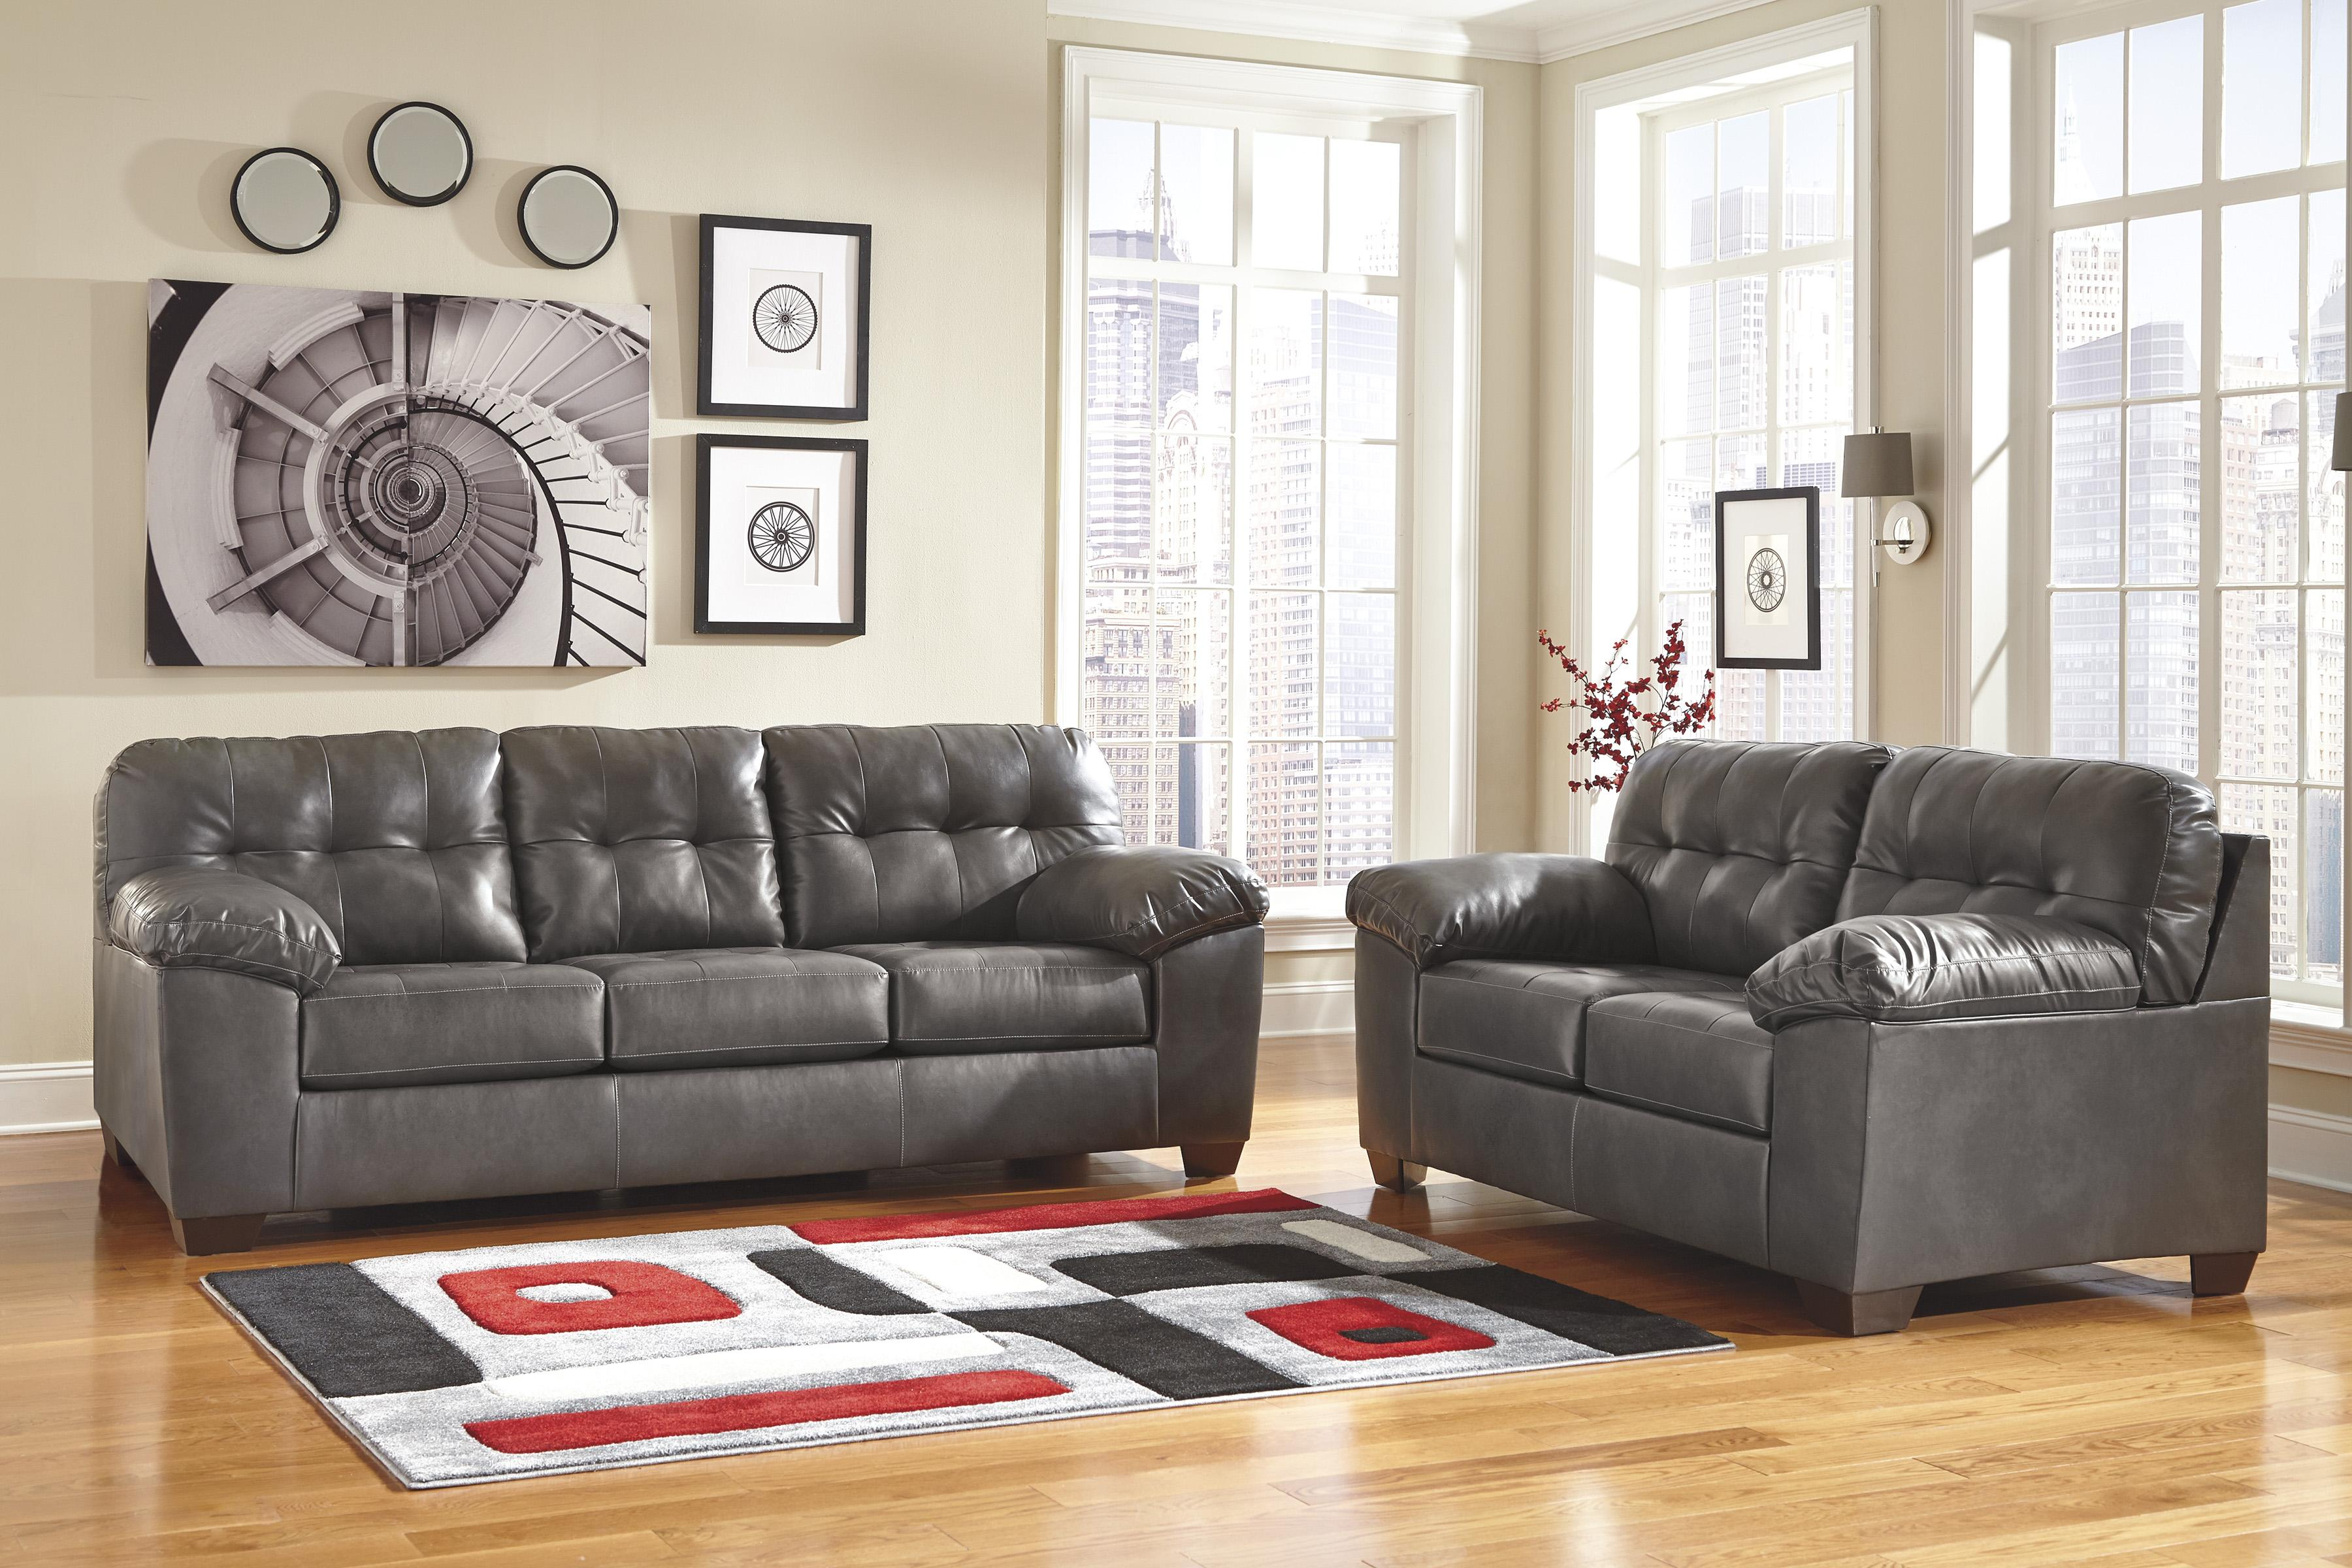 Alliston DuraBlend® - Gray Stationary Living Room Group by Signature Design by Ashley at Lapeer Furniture & Mattress Center